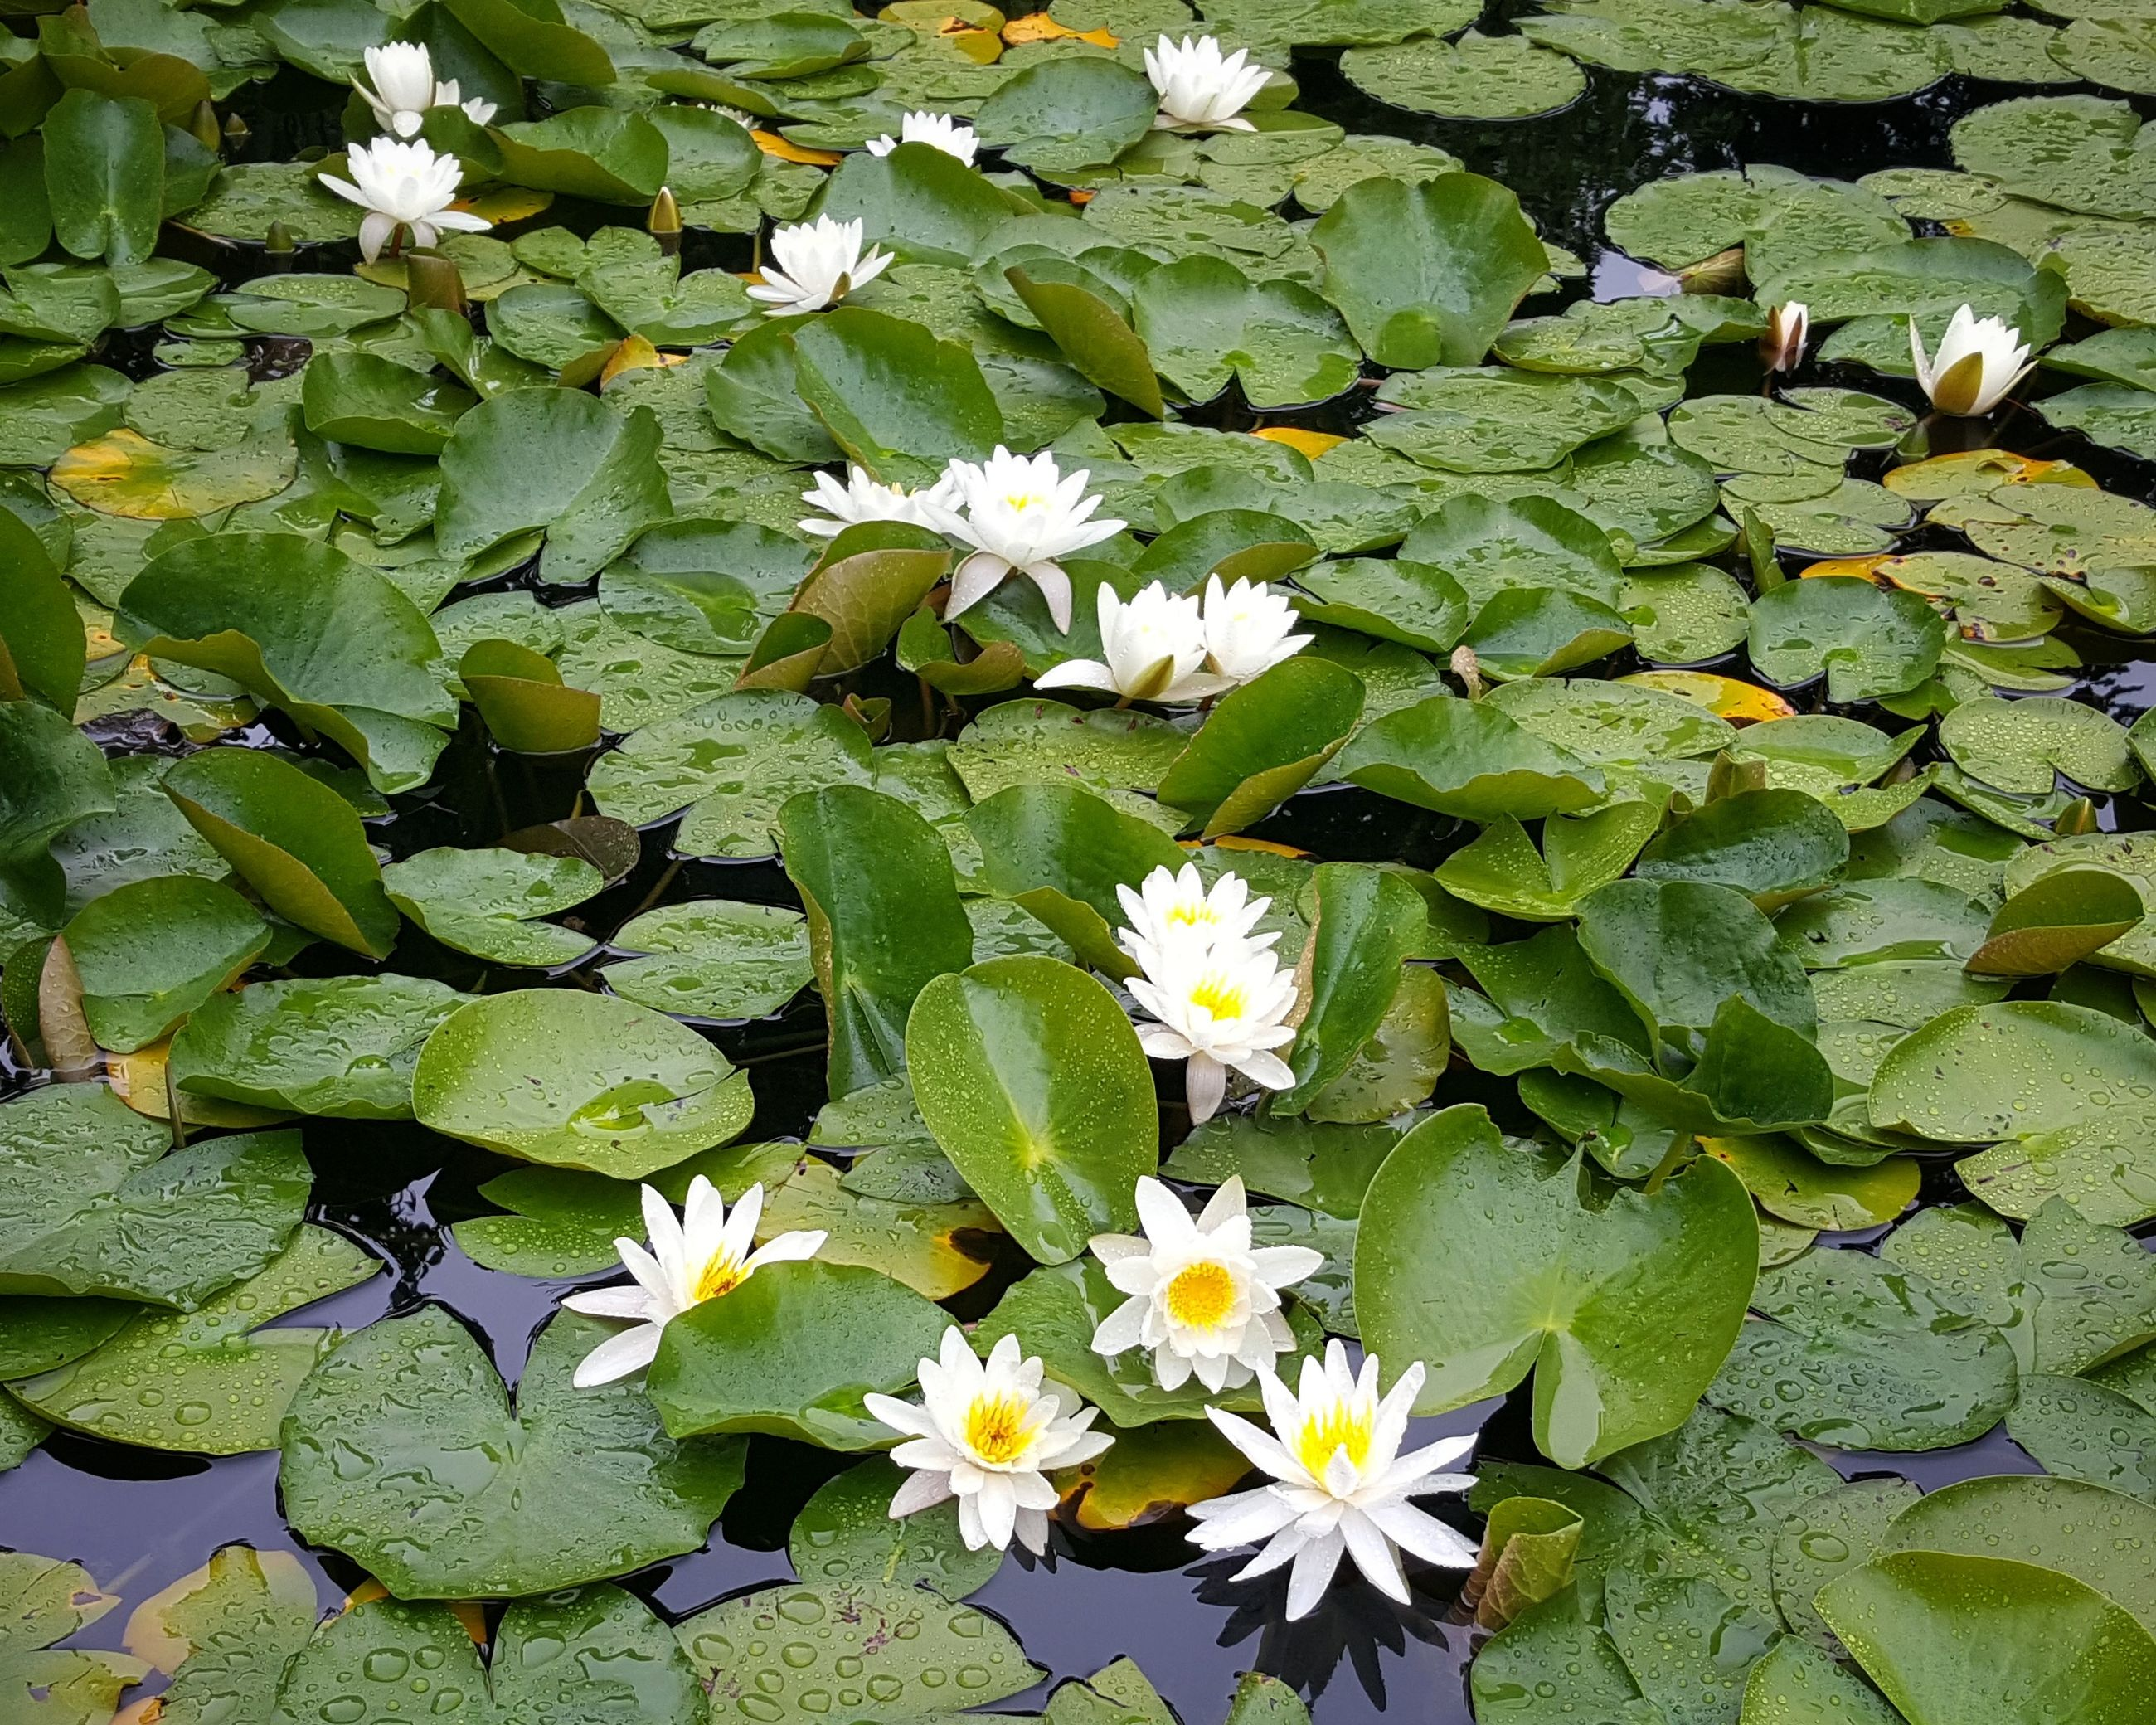 flower, leaf, growth, petal, beauty in nature, nature, freshness, fragility, flower head, water lily, plant, green color, day, no people, outdoors, lily pad, blooming, floating on water, lotus water lily, close-up, water